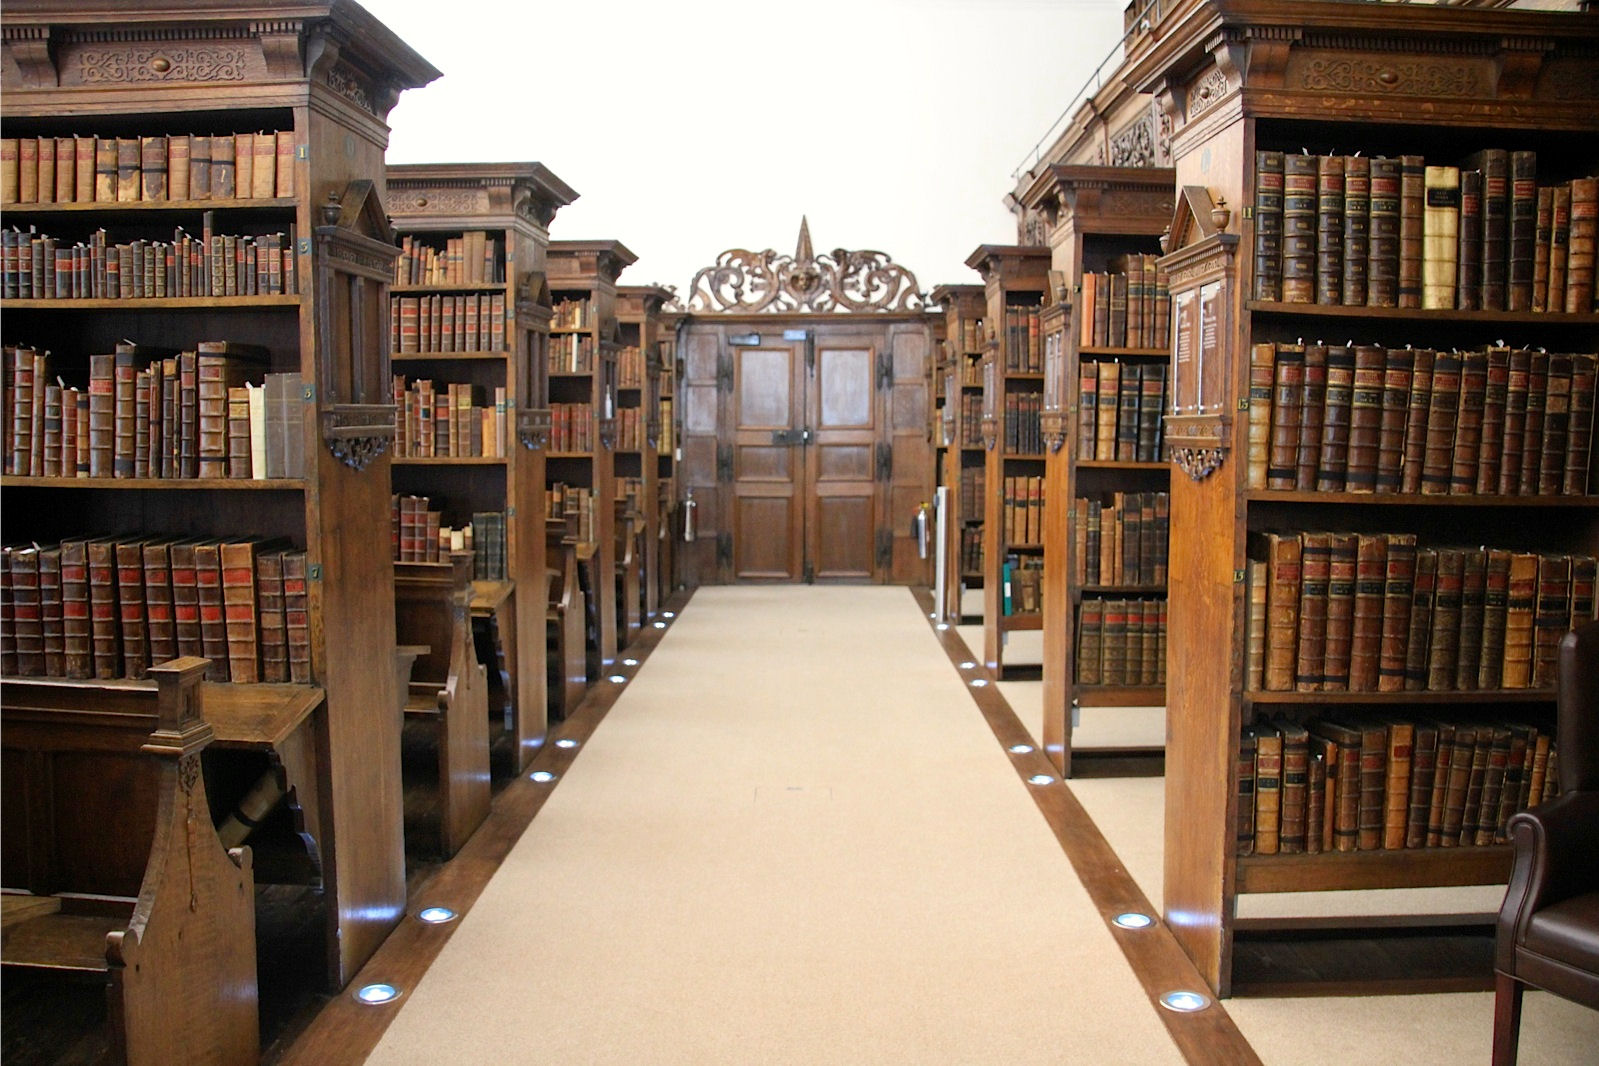 Jesus College - Fellows' Library